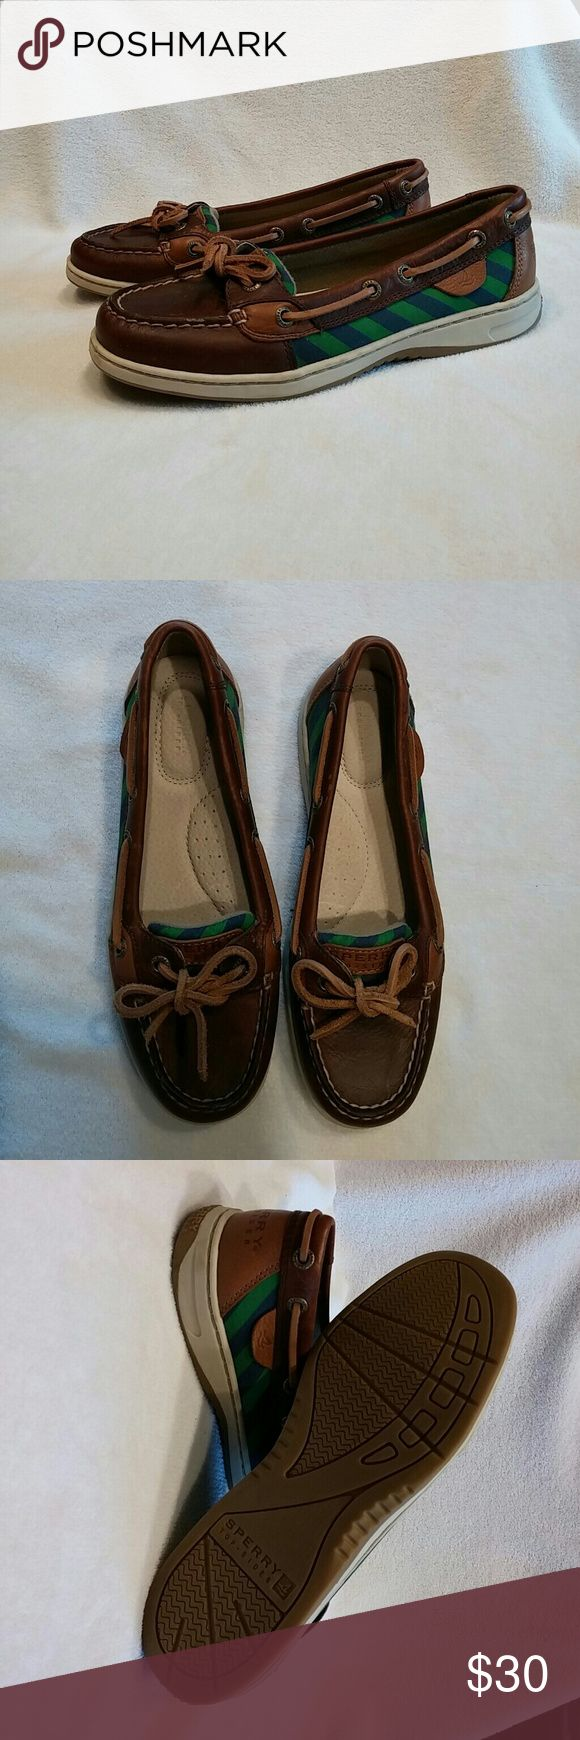 Sperry Women's Angelfish Striped Boatshoe Women's like new blue and green striped boatshoes. Size 6.5. Sperry Top-Sider Shoes